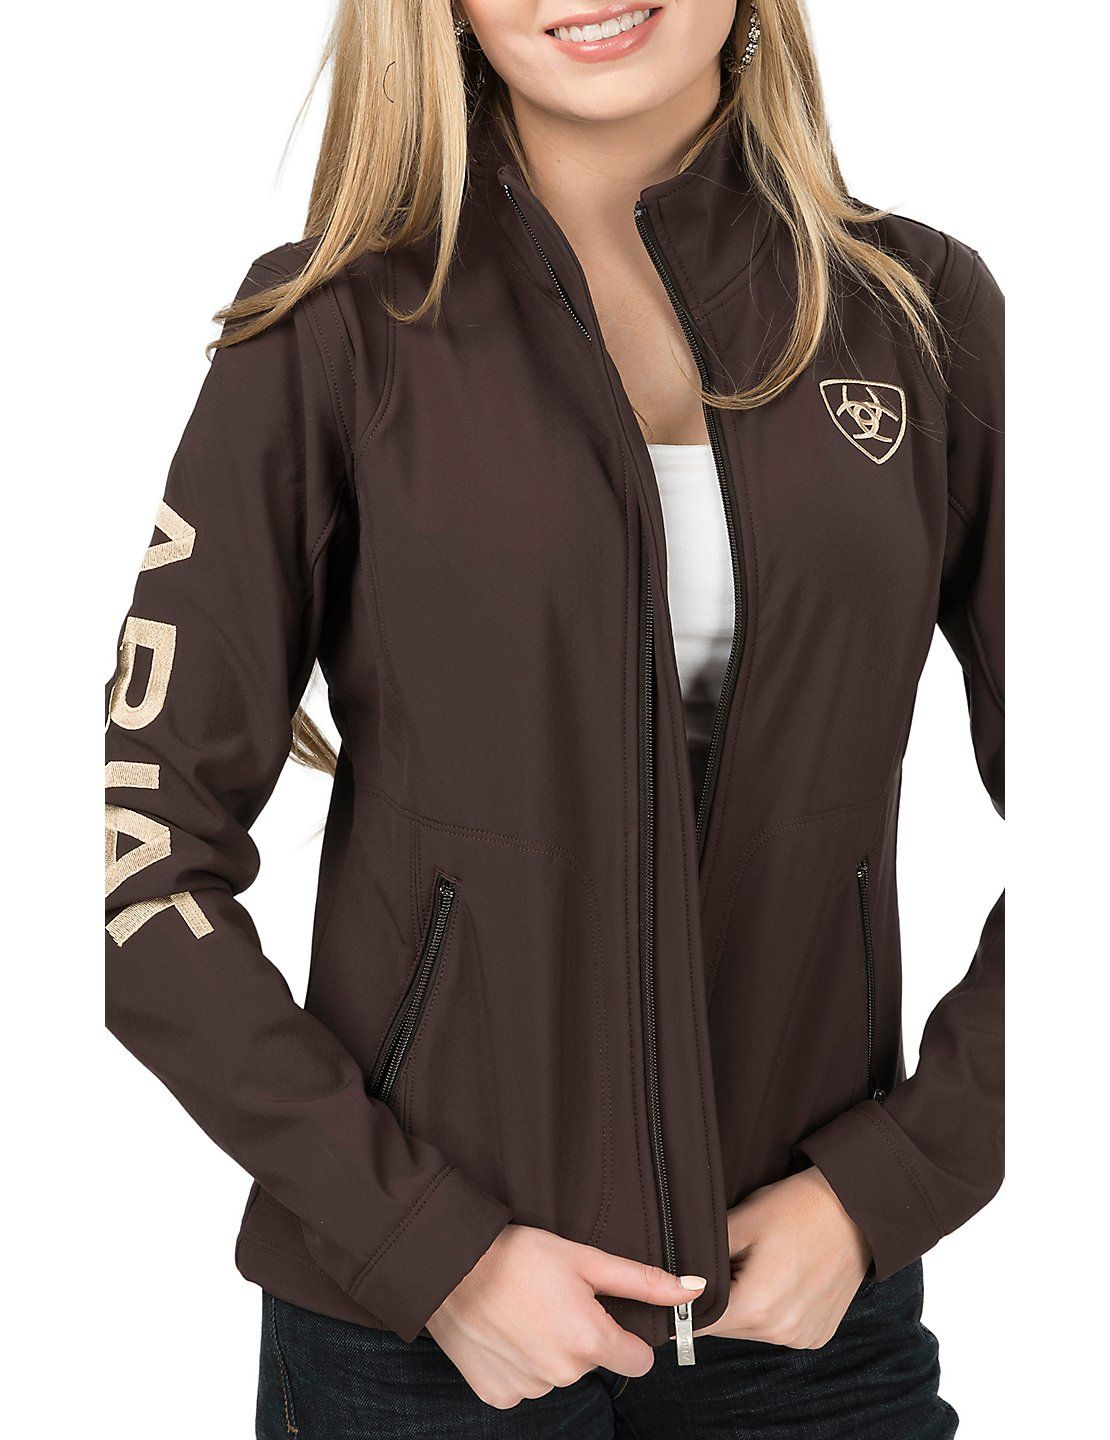 Ariat Women's Brown with Cream Logos Long Sleeve Soft Shell Jacket ...